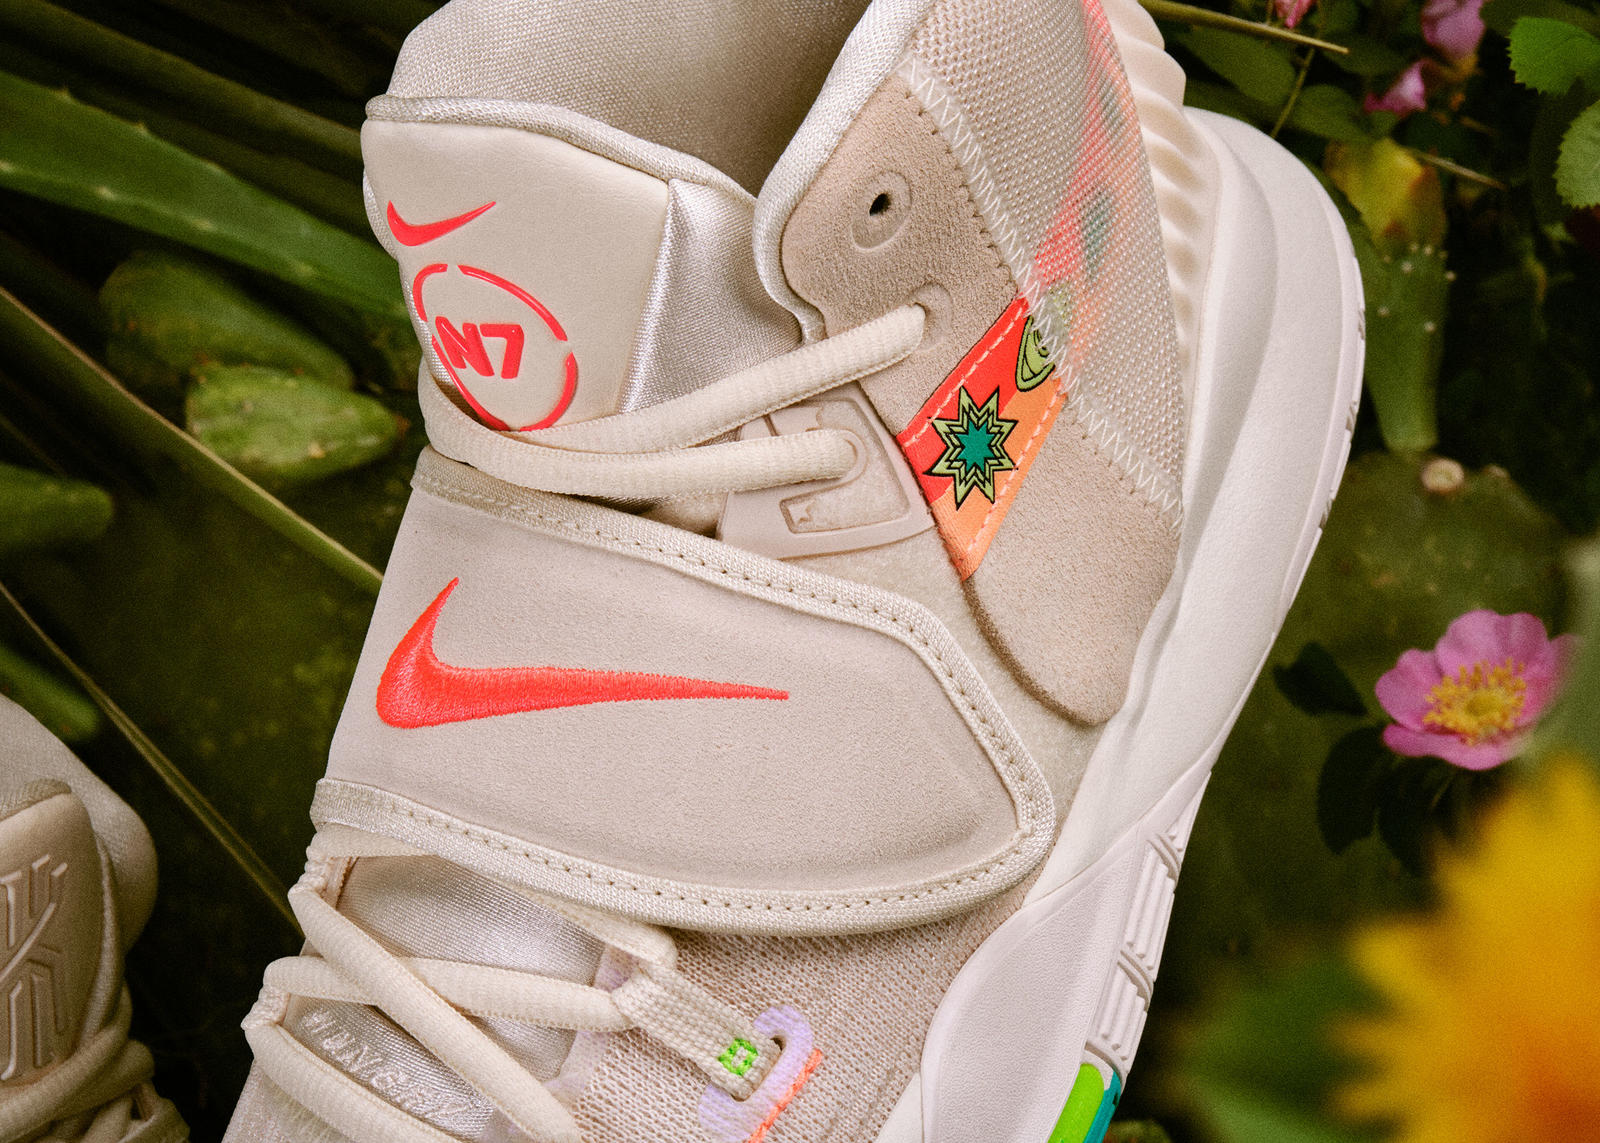 Nike N7 Summer 2020 Footwear and Apparel Official Images and Release Date 2 1